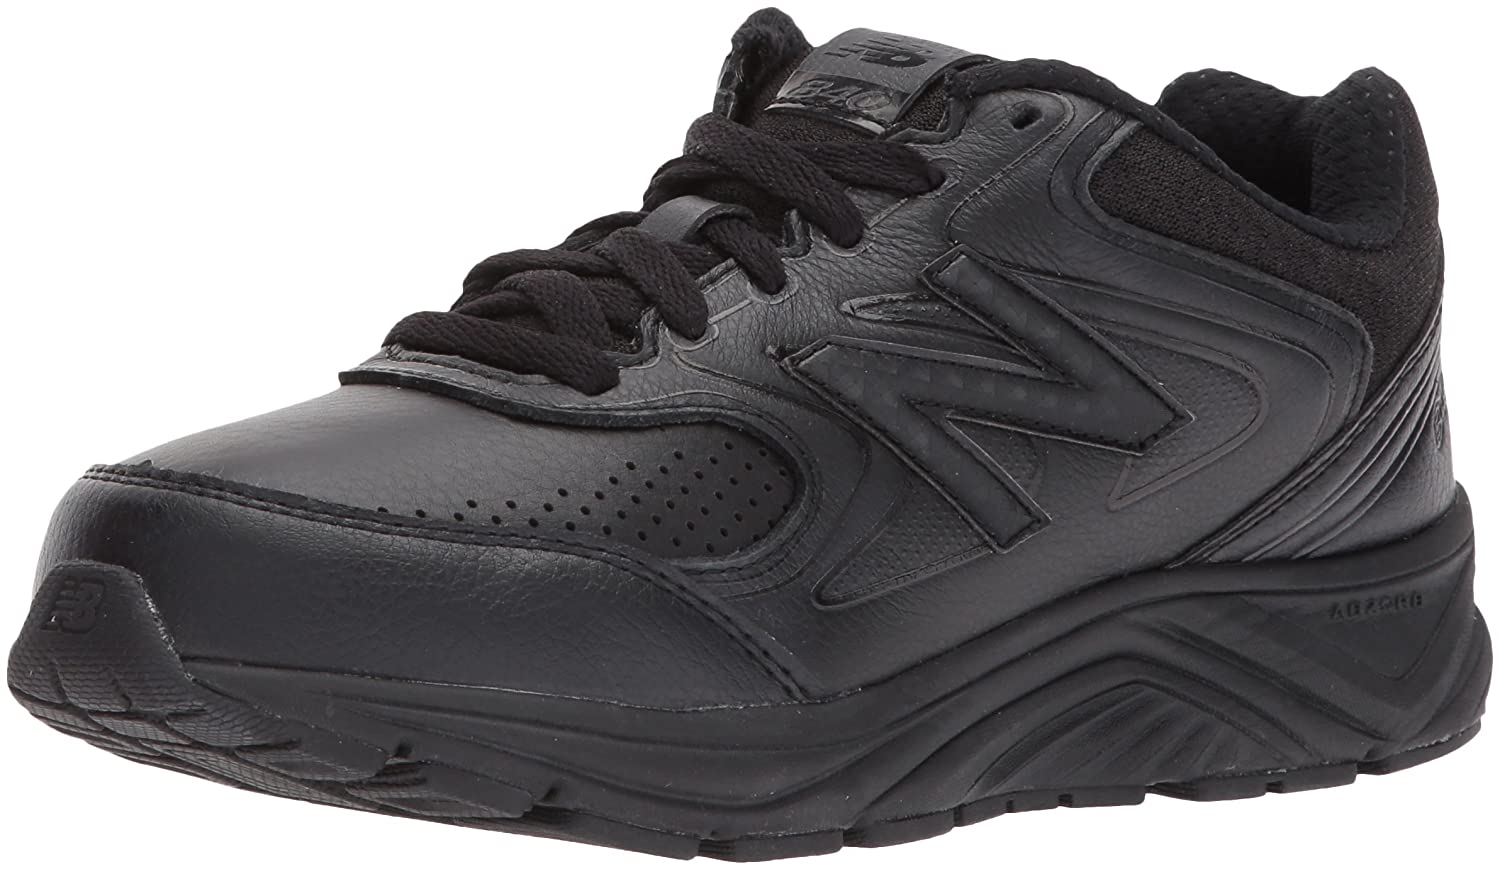 09204c8be5625 New Balance Women's 840 Low Rise Hiking Boots: Amazon.co.uk: Shoes & Bags